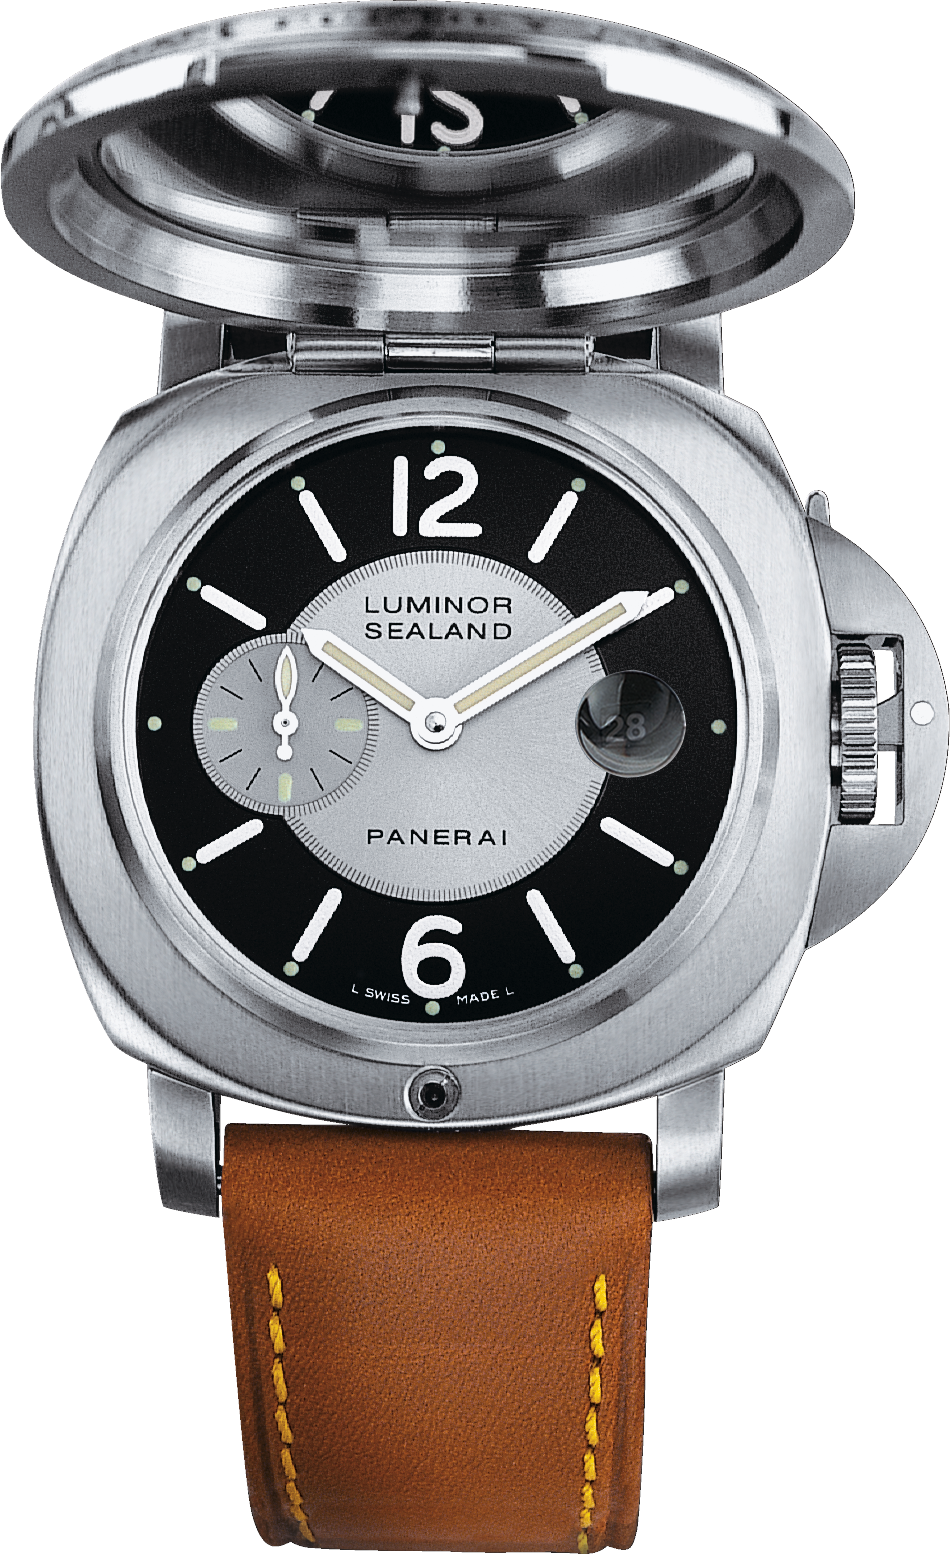 PNPAM00154 - Luminor Sealand for Purdey - 44mm